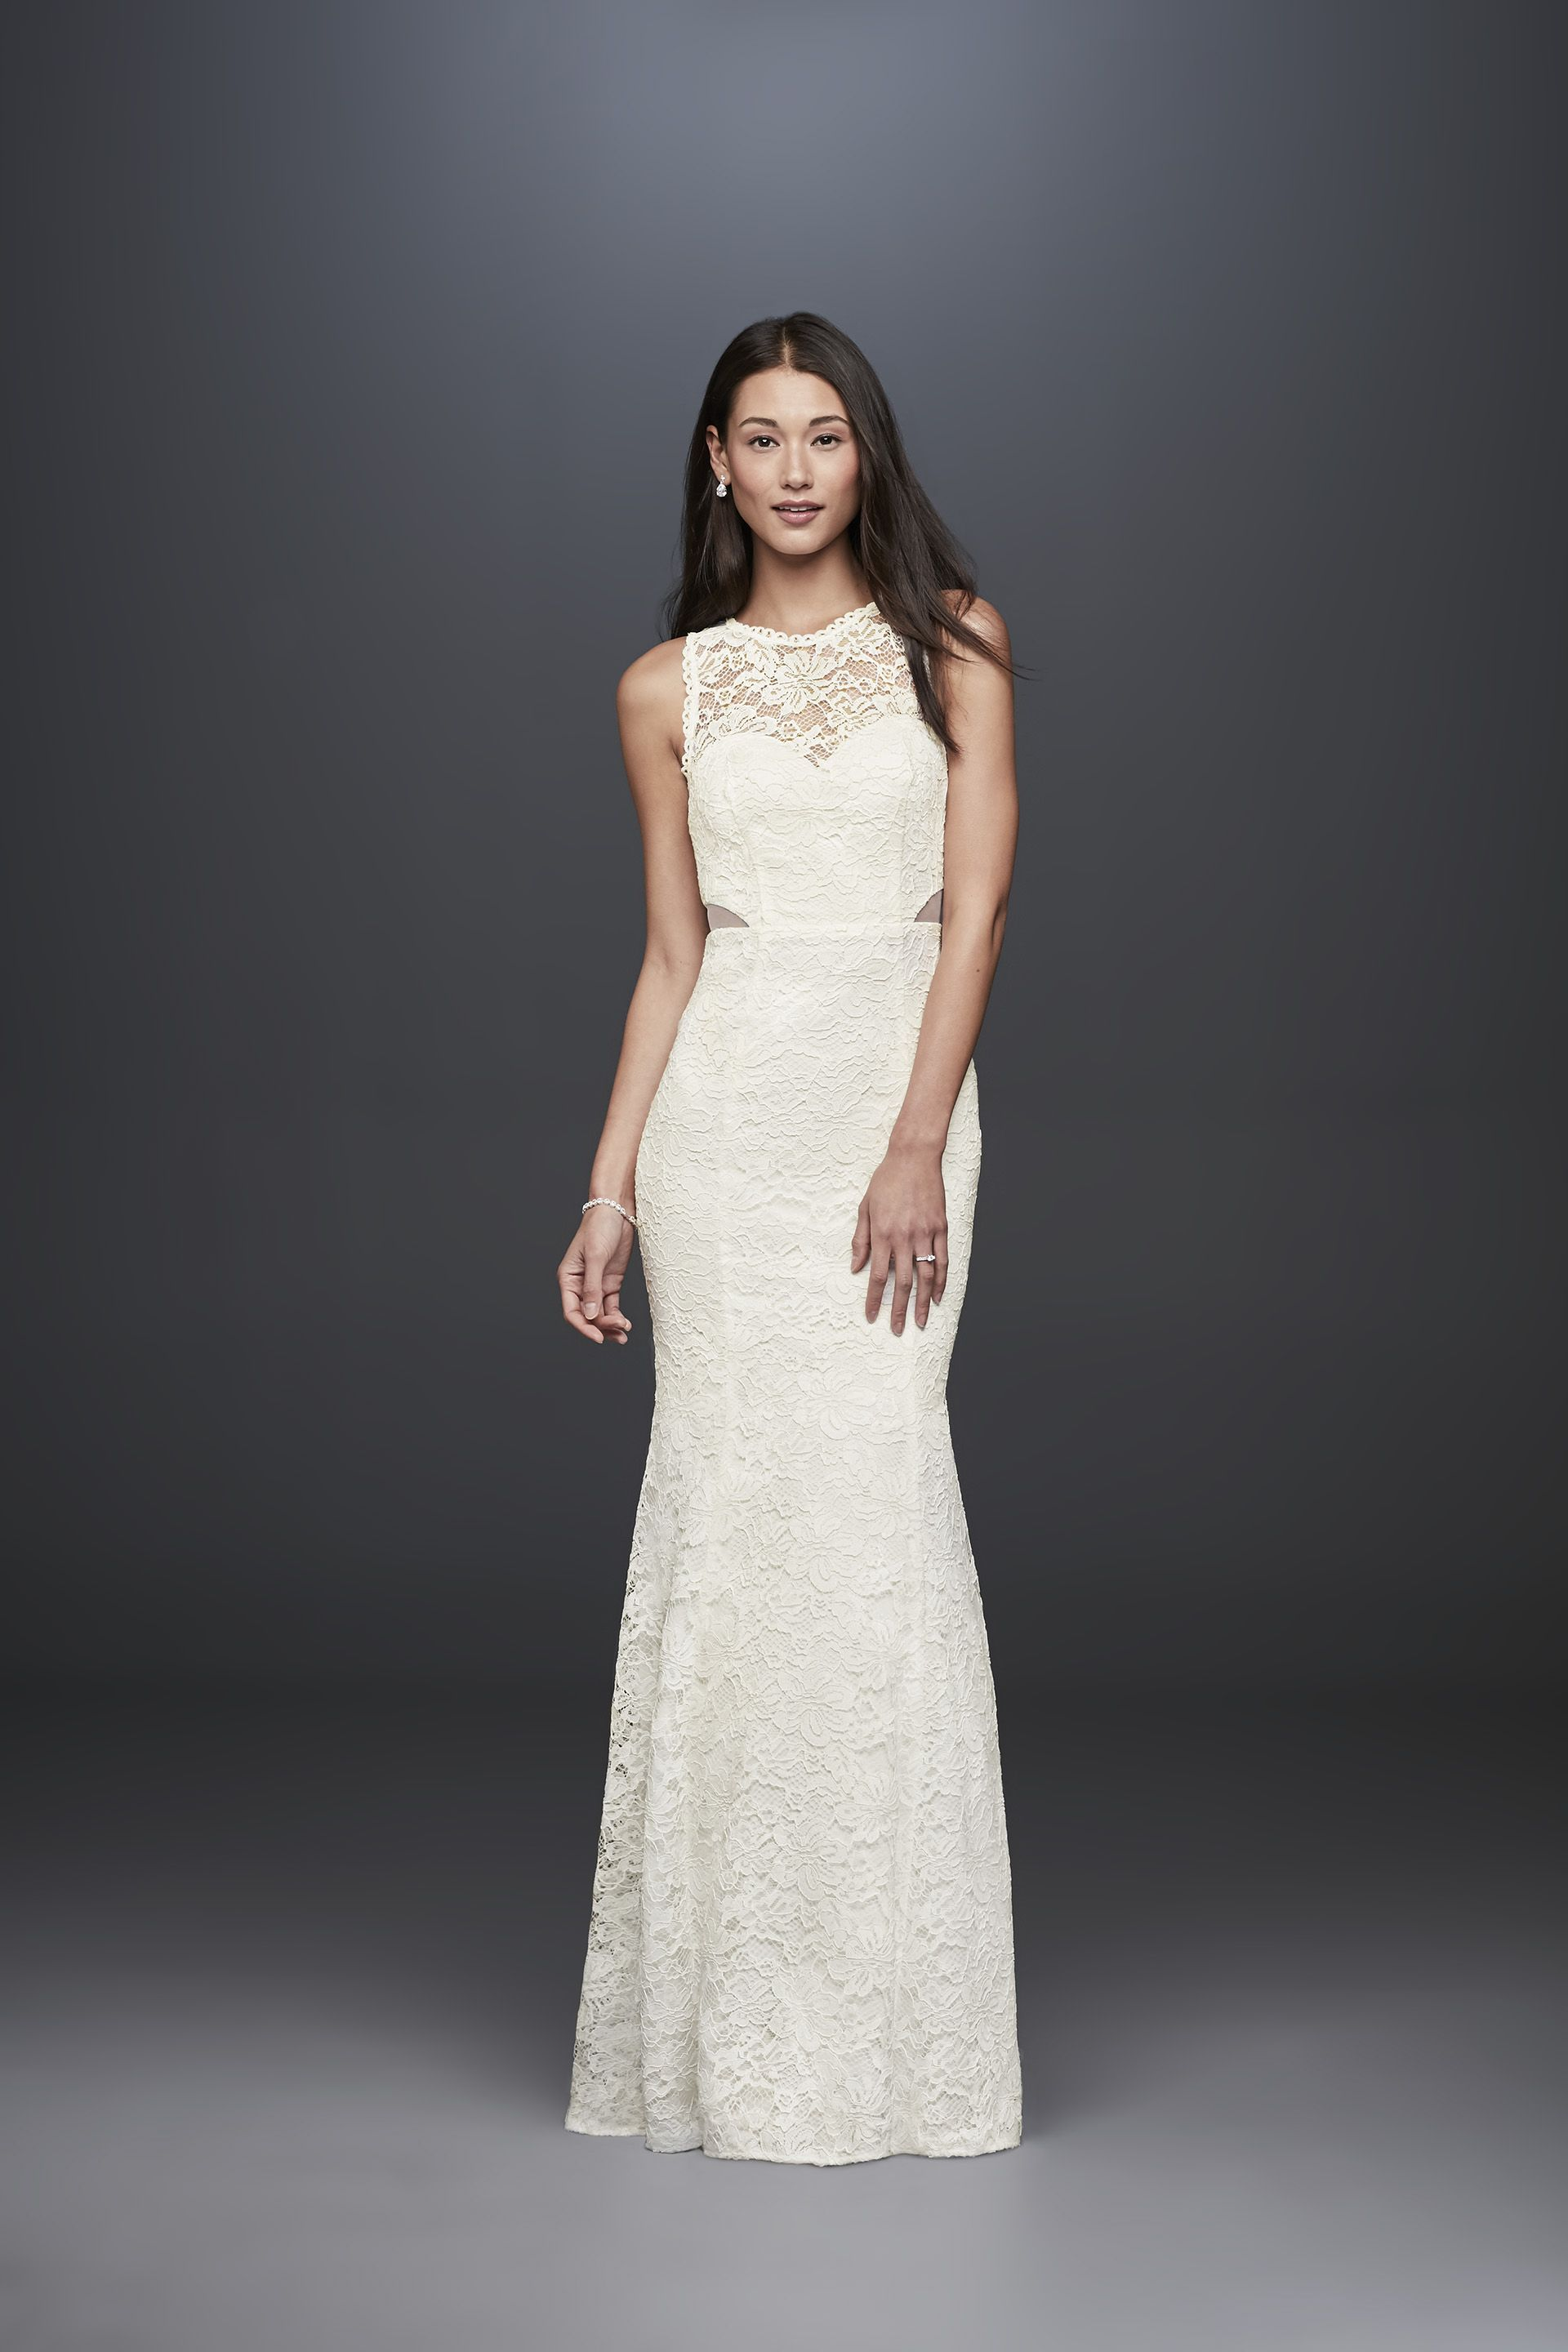 Casual Wedding Dresses Under $300 You Won't Believe ...